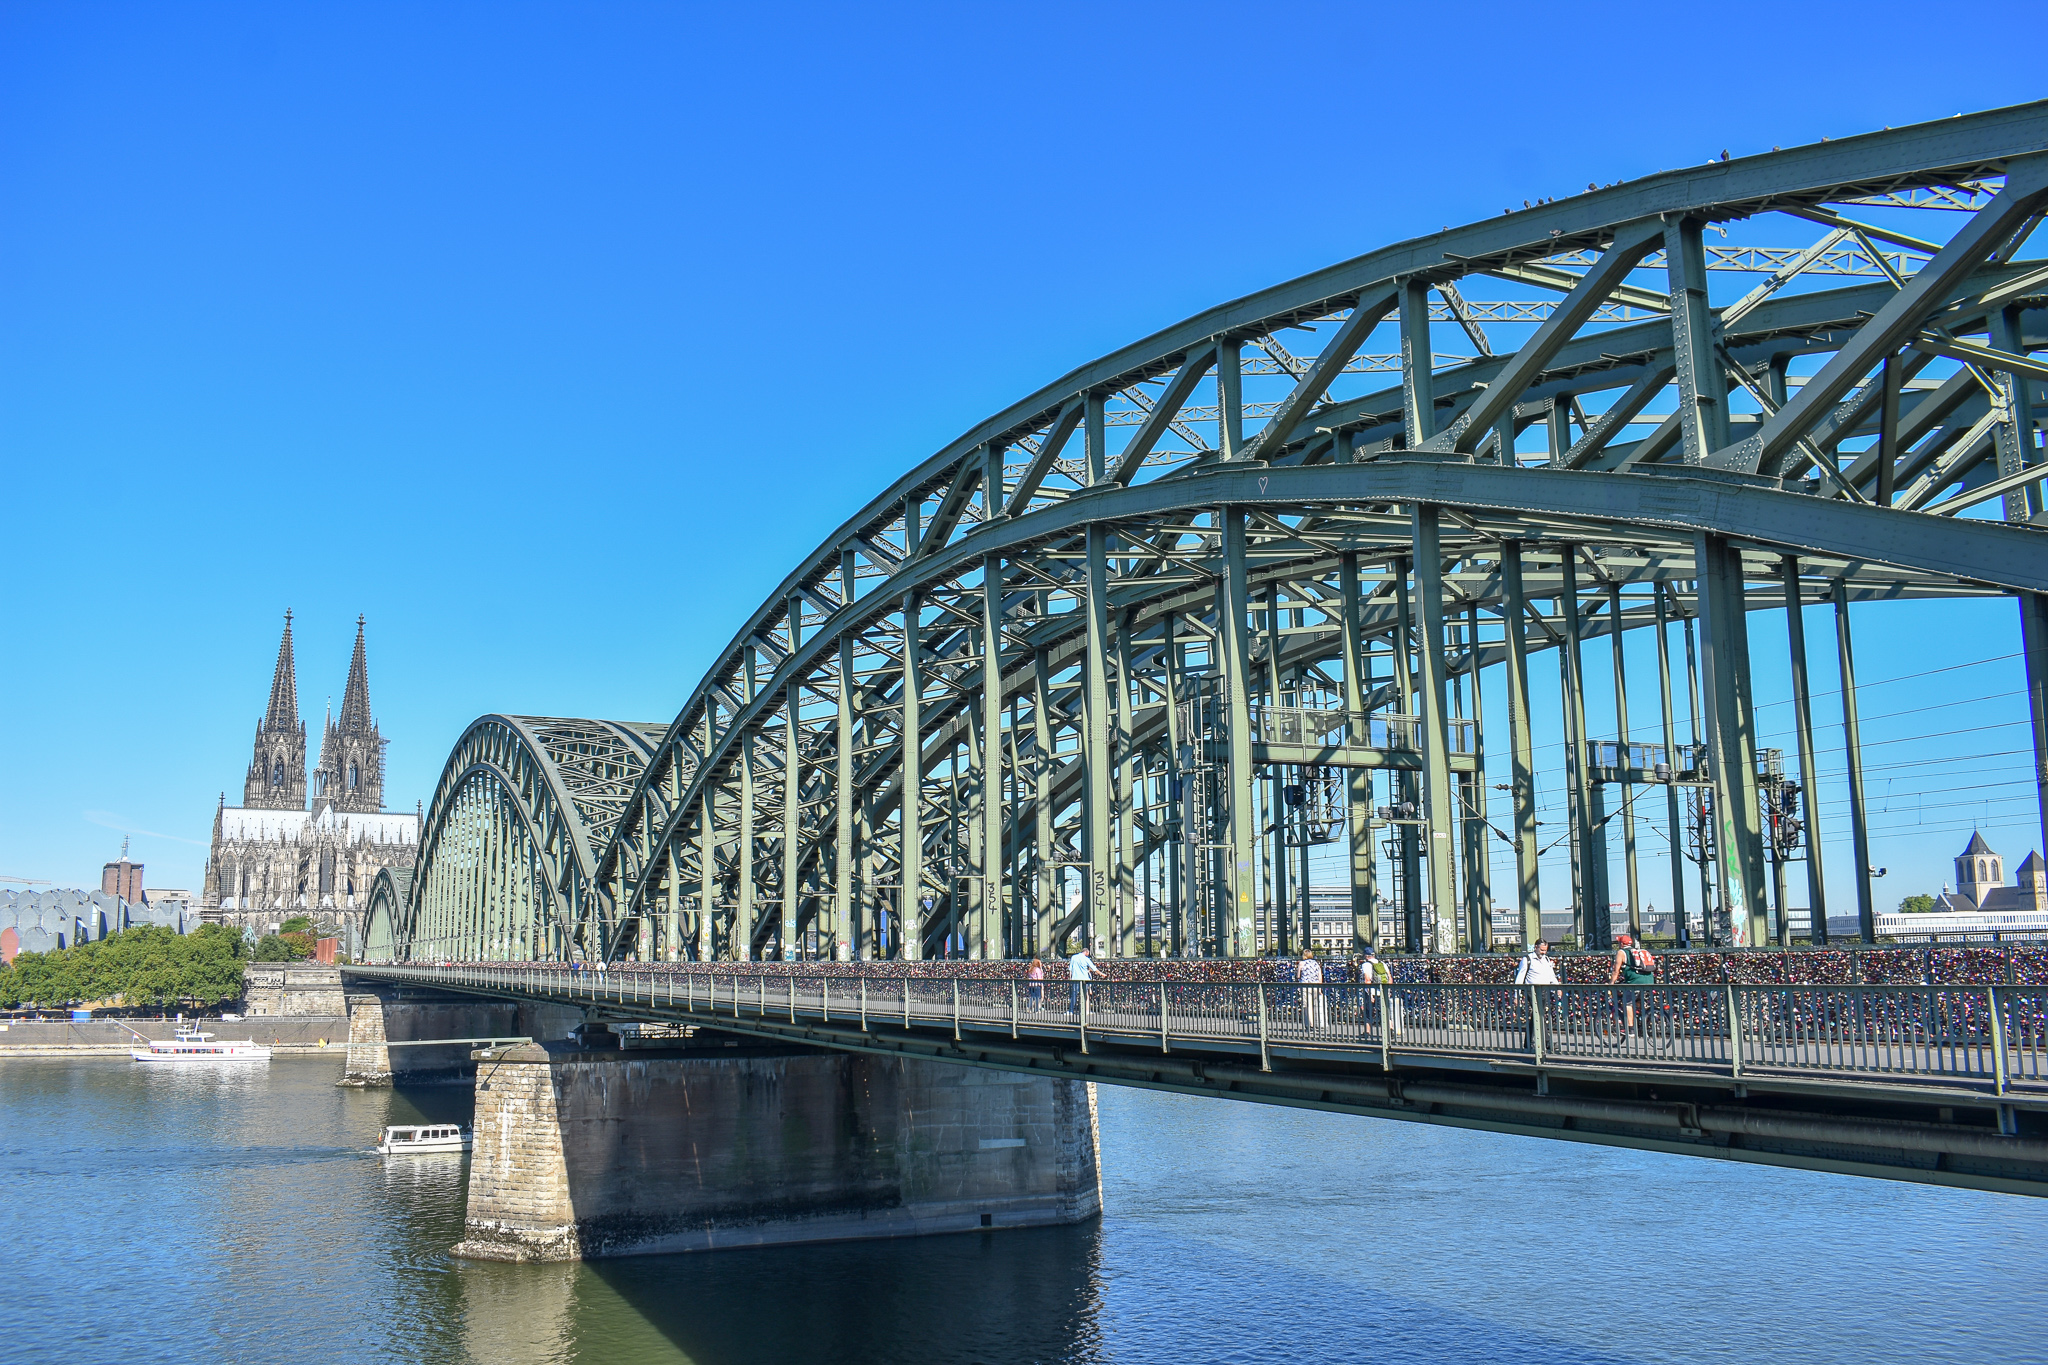 Cologne Bridge